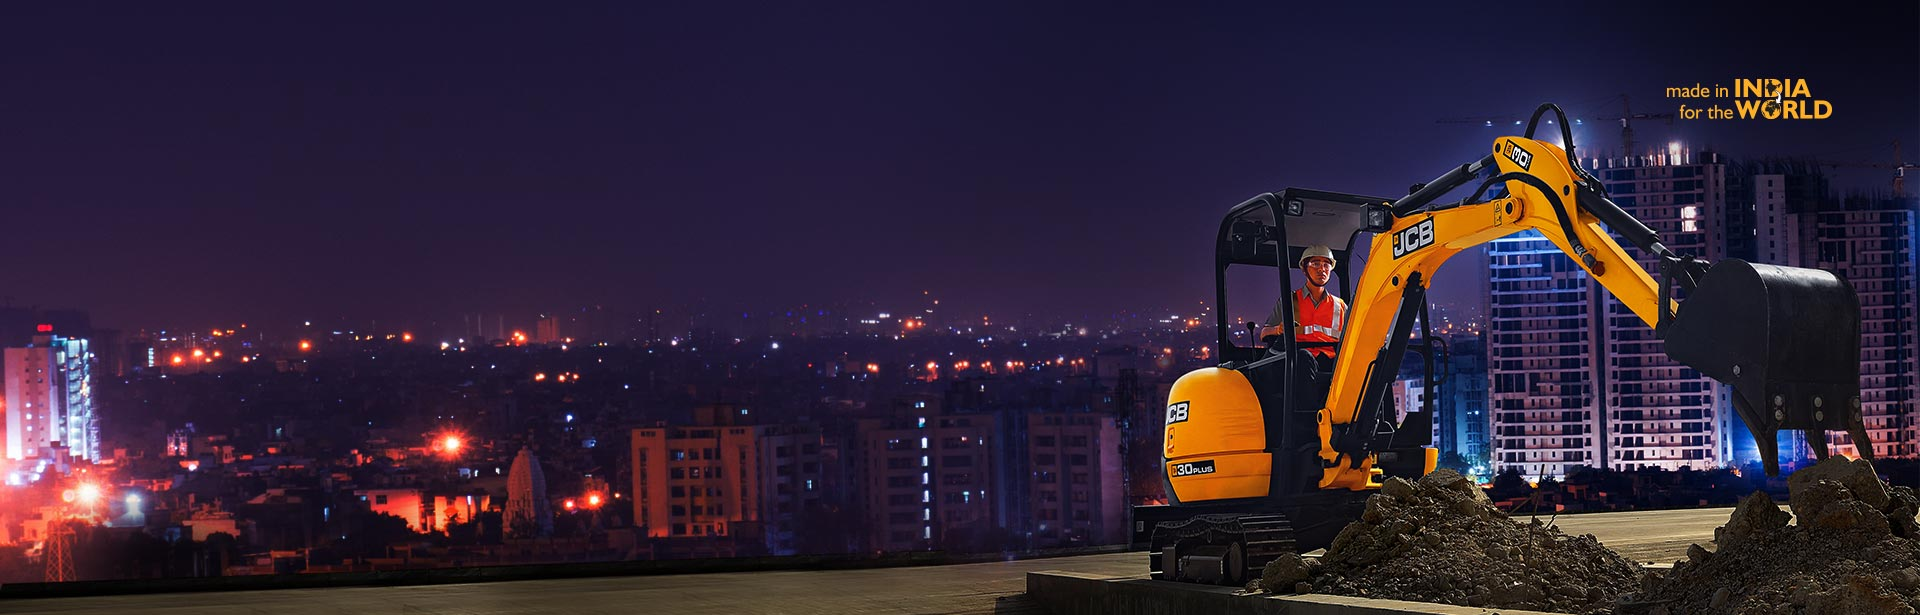 JCB Mini Excavator Indore